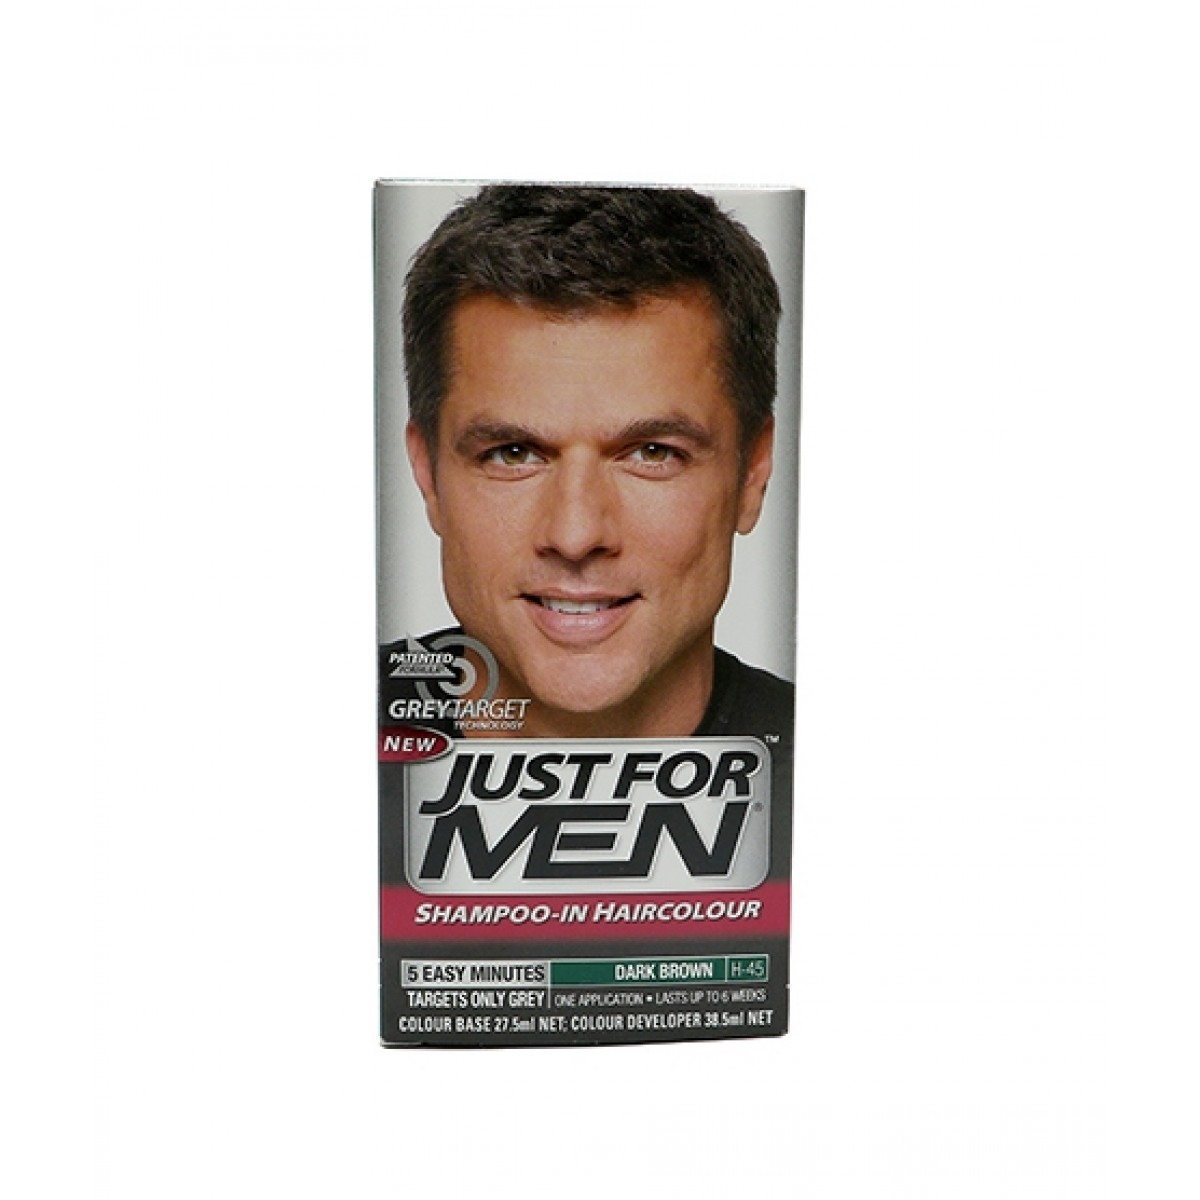 Just For Men Shampoo-In Haircolour (H-45) Price in ...